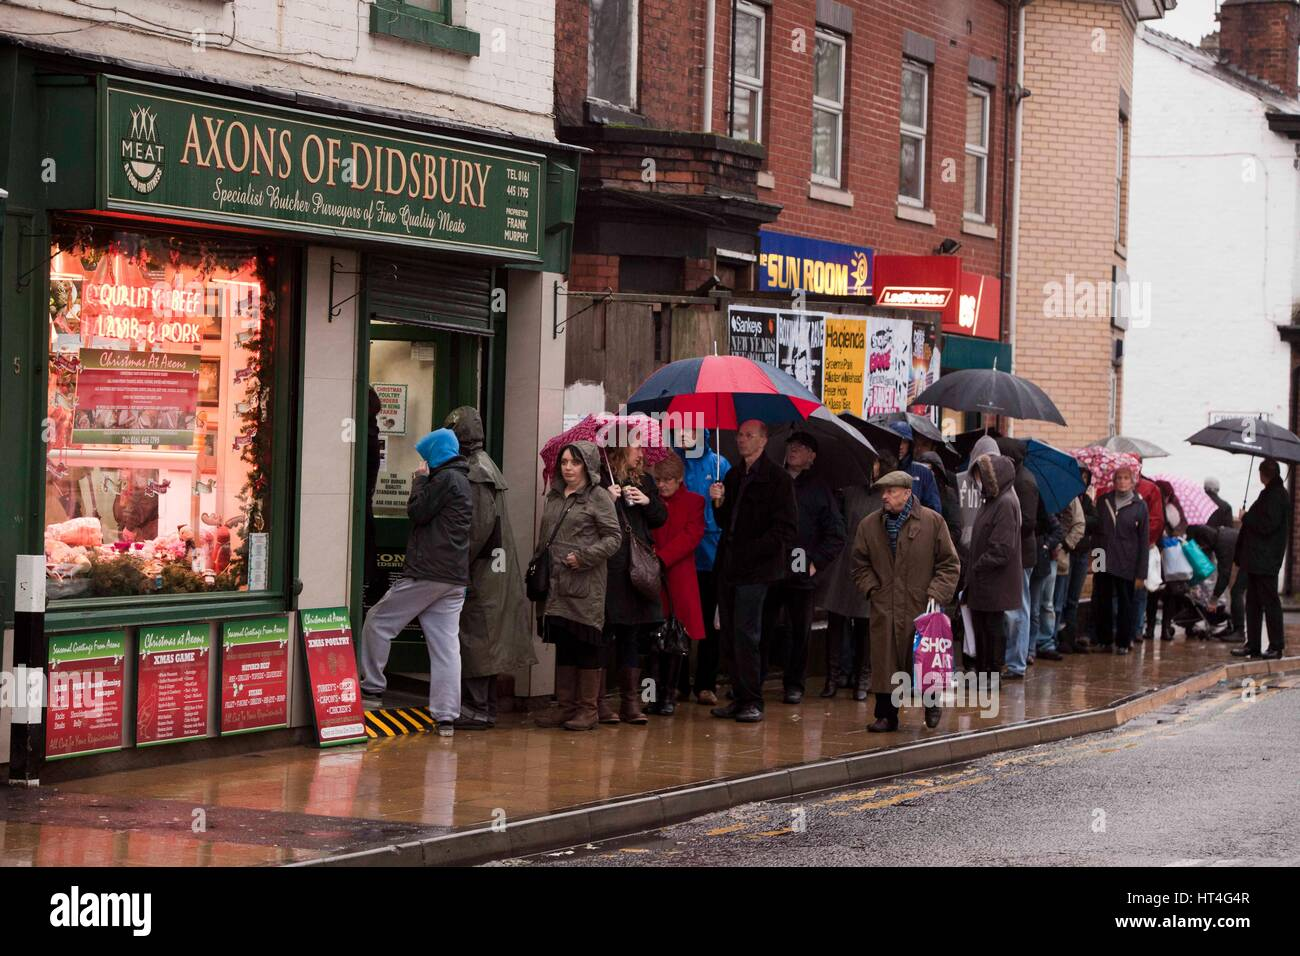 Queues of people outside a butchers shop ahead of Christmas .  Axons of Didsbury butchers - Stock Image